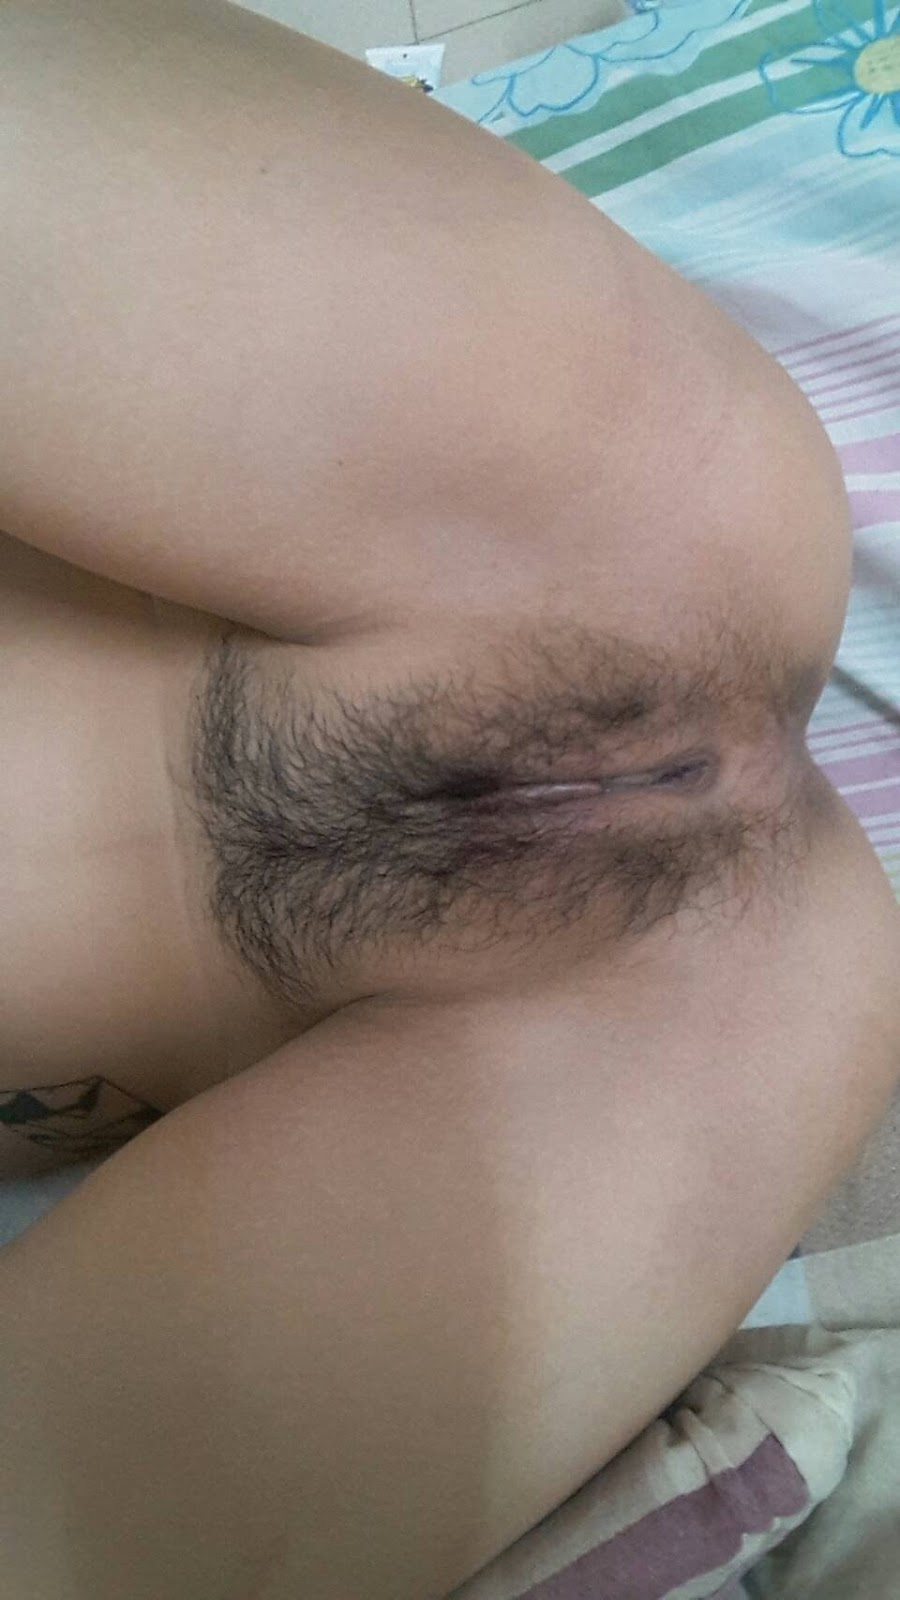 q6aSwVHbjK0 - Nude photos of sexy asian girls showing off pussy 2020